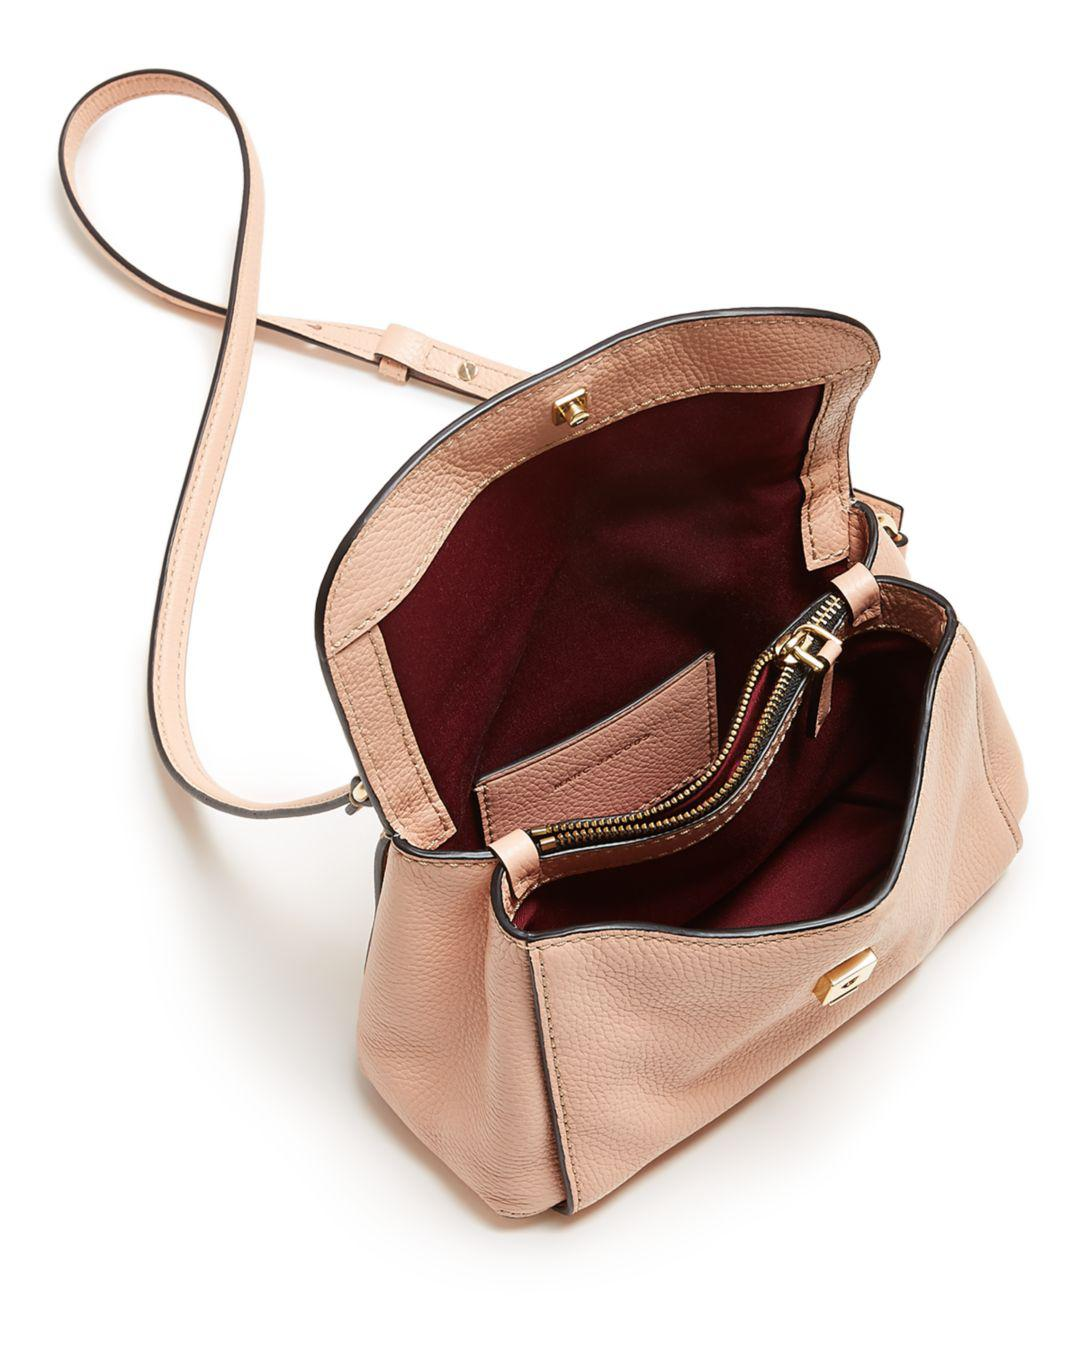 0bb861e43f Marc Jacobs Mini Boho Grind Leather Crossbody in Pink - Lyst